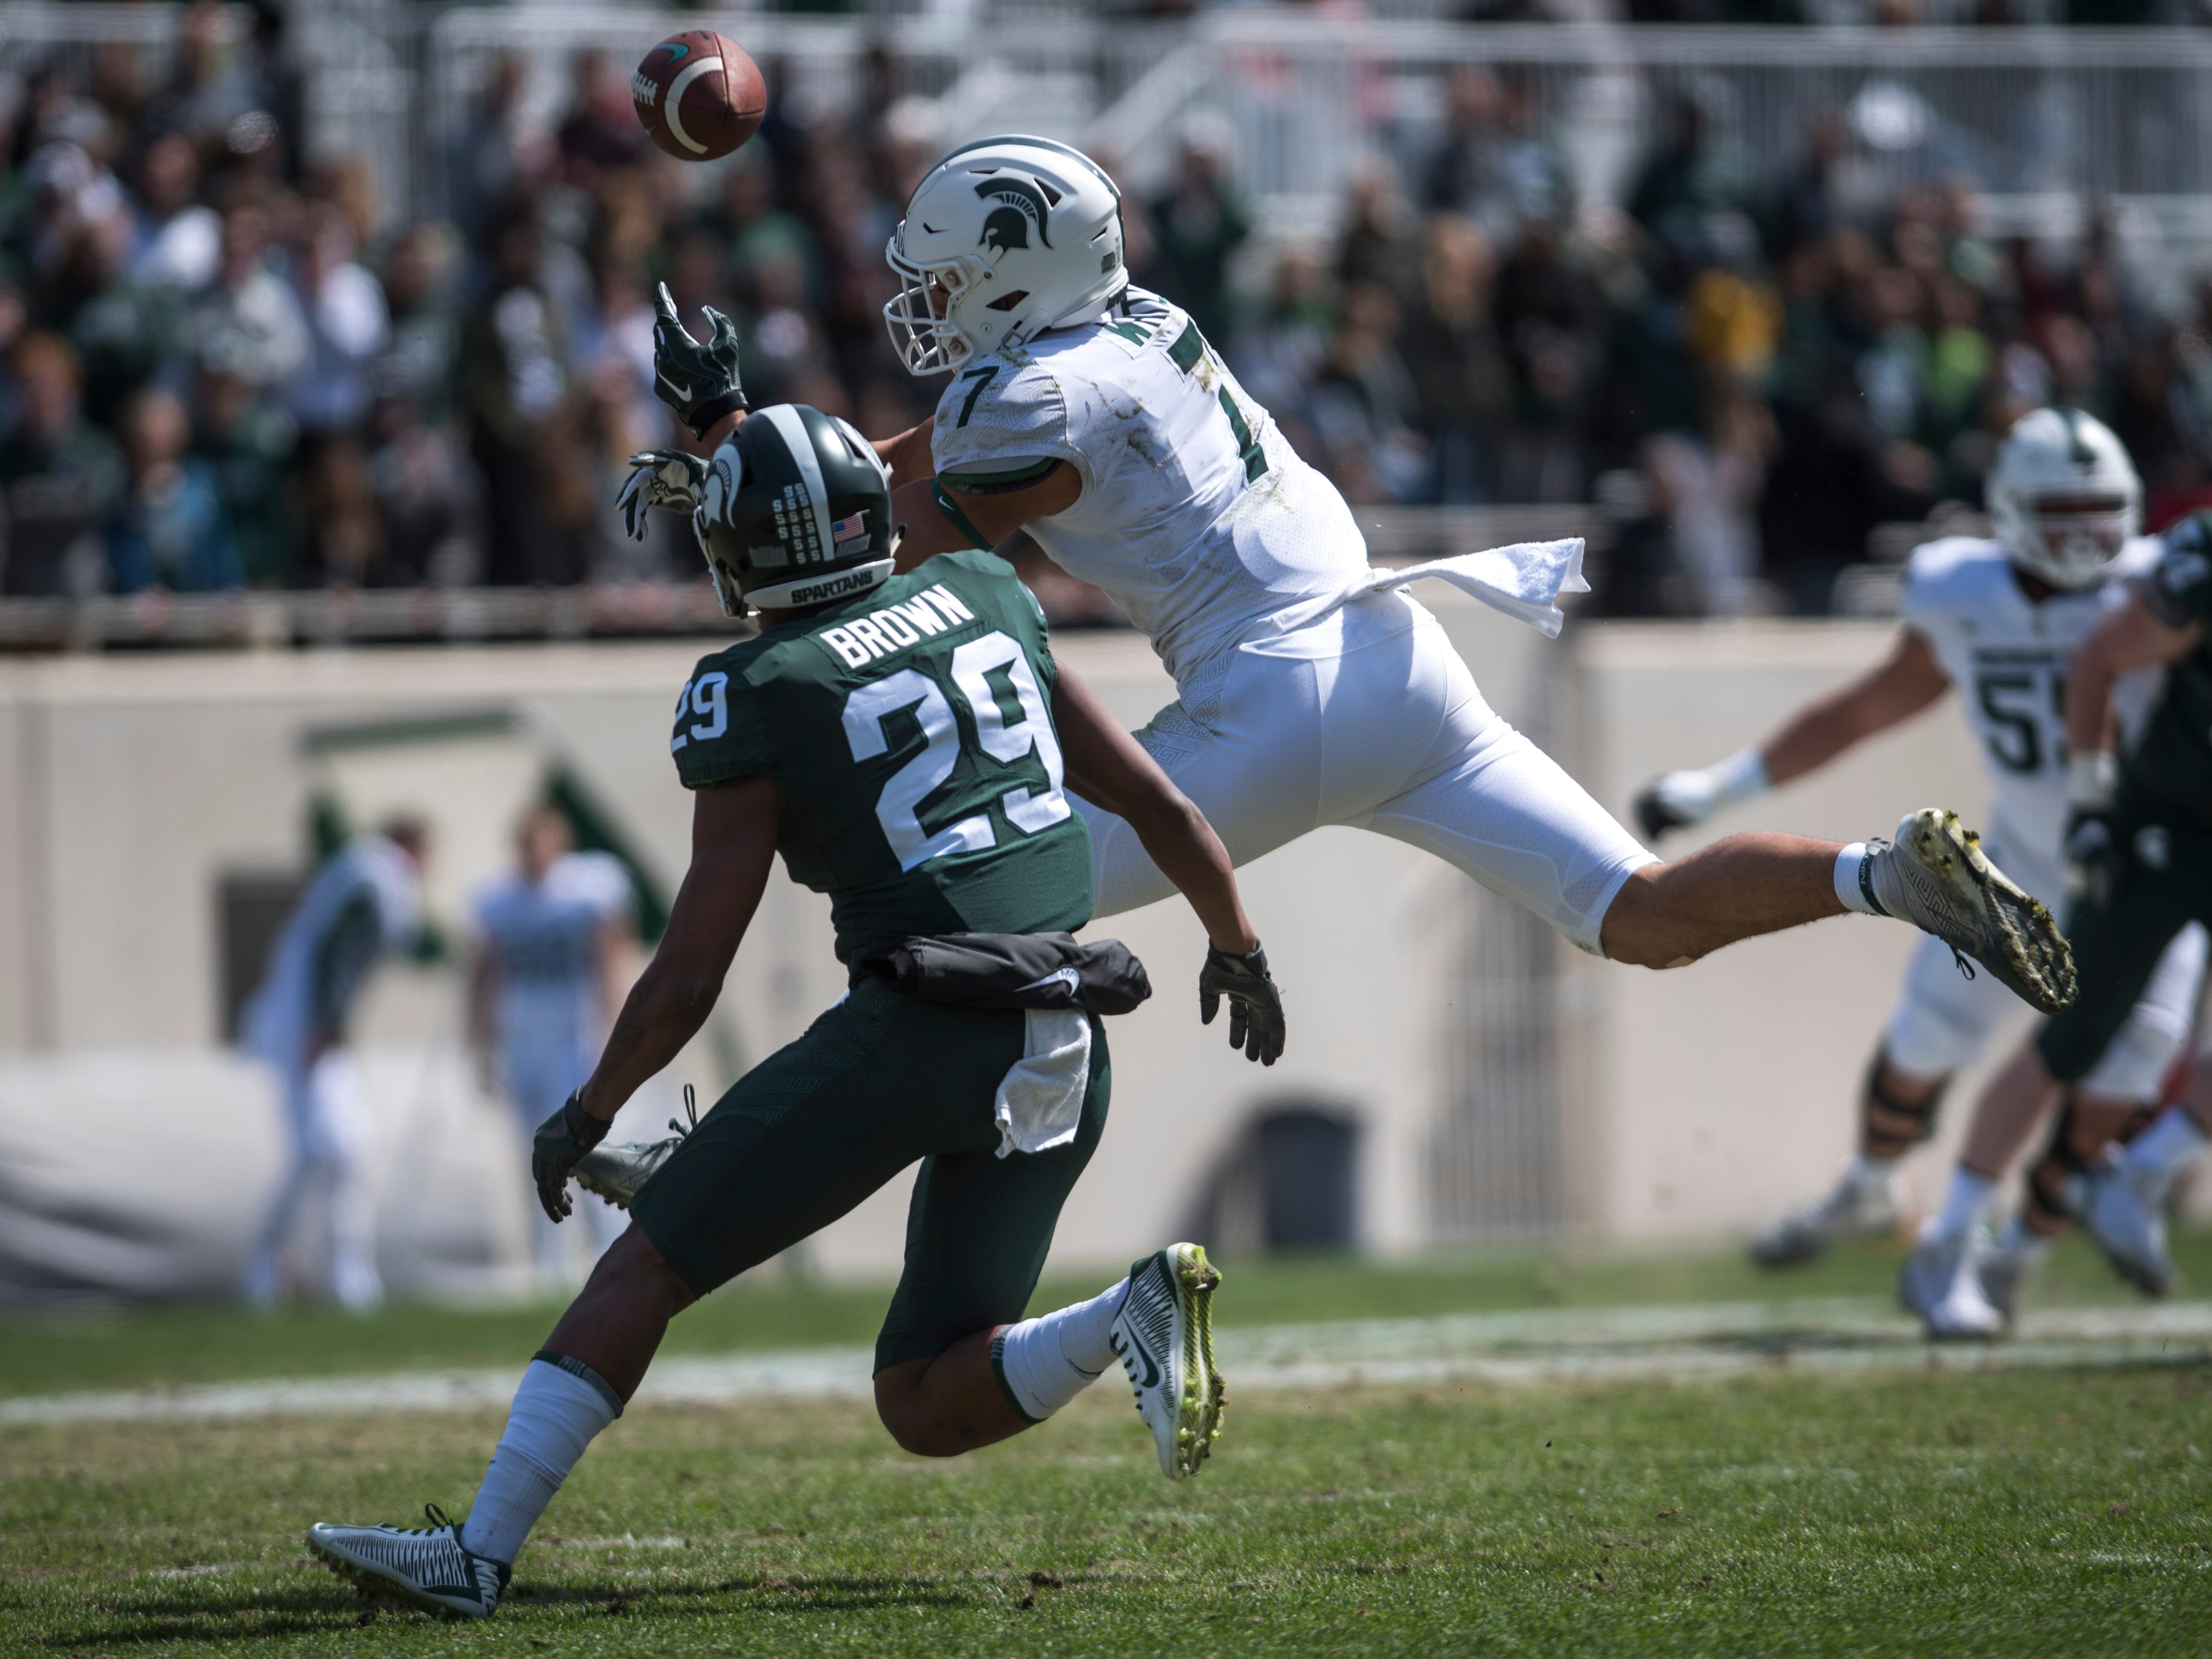 Wide receiver Cody White attempts to catch the ball while being covered by cornerback Shakur Brown.